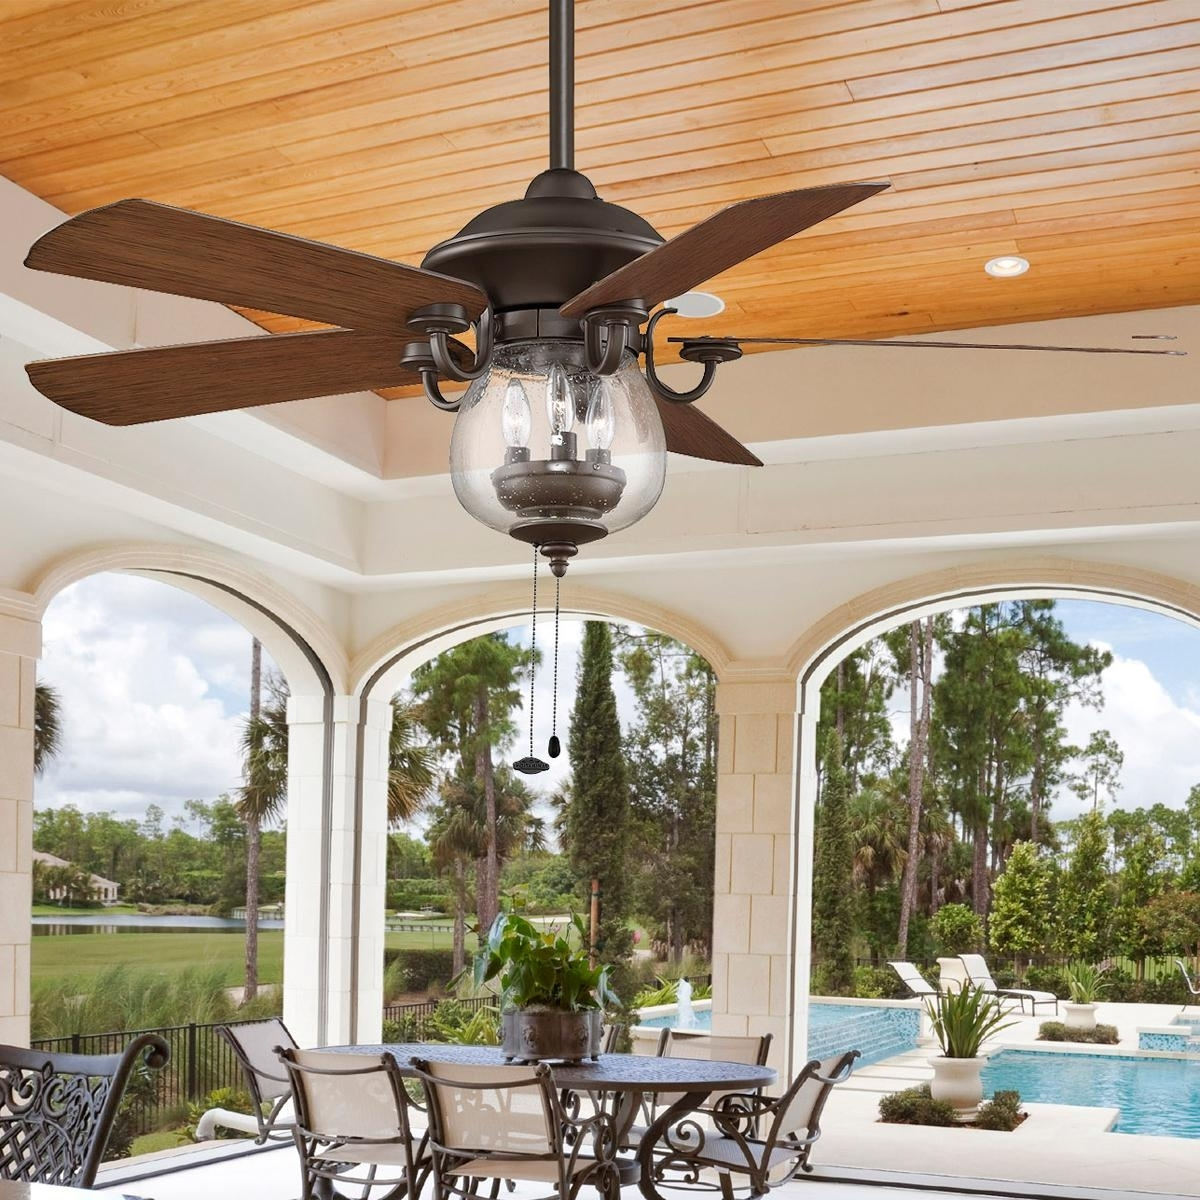 Outdoor Ceiling Fans With Lantern Light For Most Recently Released Ceiling Fan: Recomended Exterior Ceiling Fans Ideas Outdoor Fans (View 11 of 20)